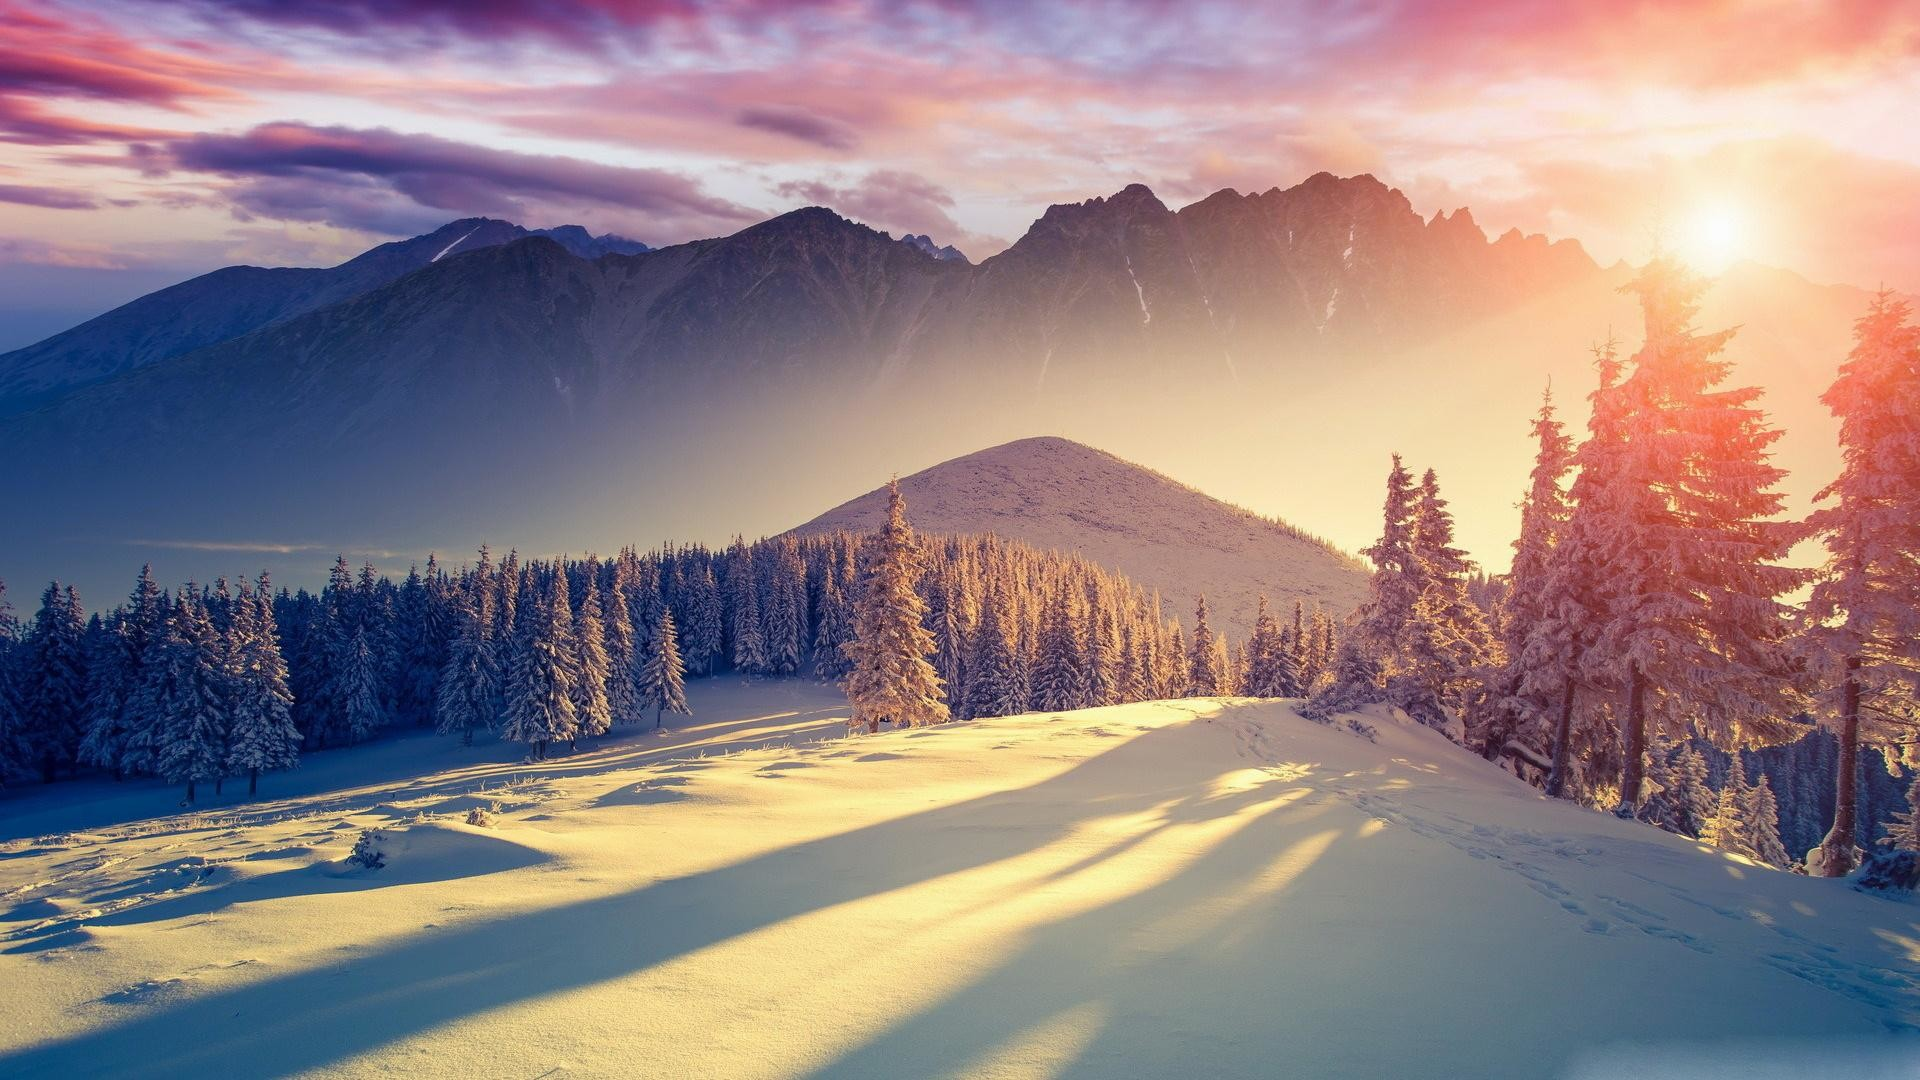 wallpaper.wiki-Sunset-Winter-images-1920×1080-PIC-WPE00116